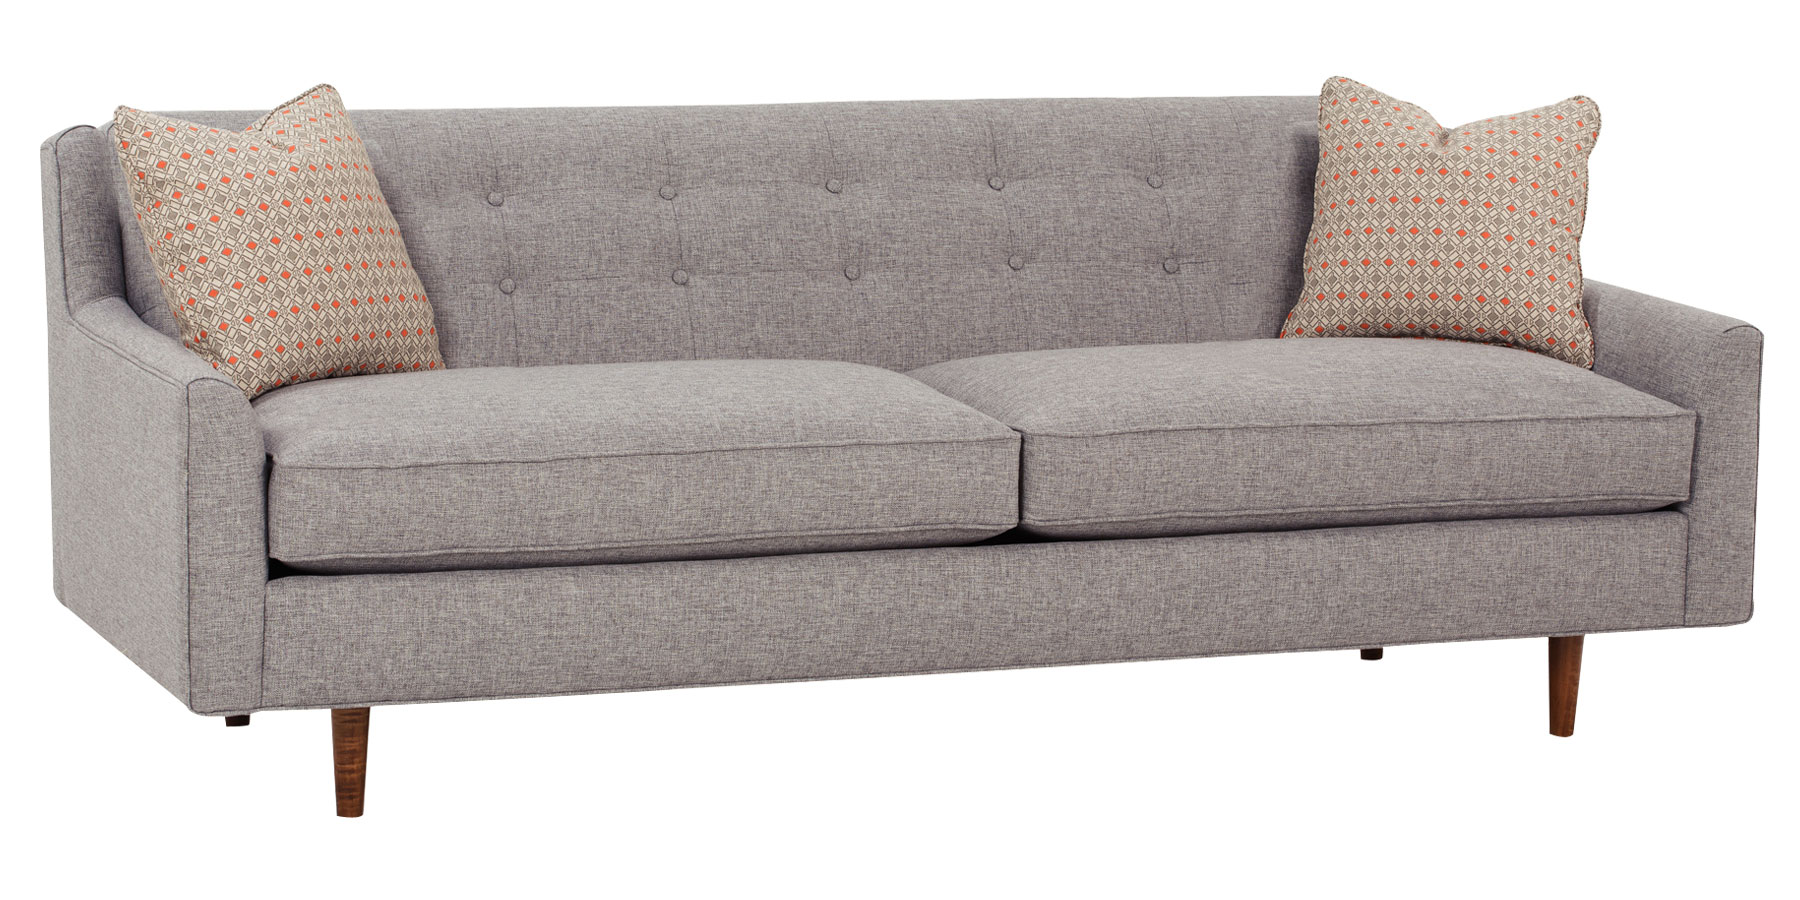 Mid century fabric sofa group with inset legs club furniture for Designer furniture sofa